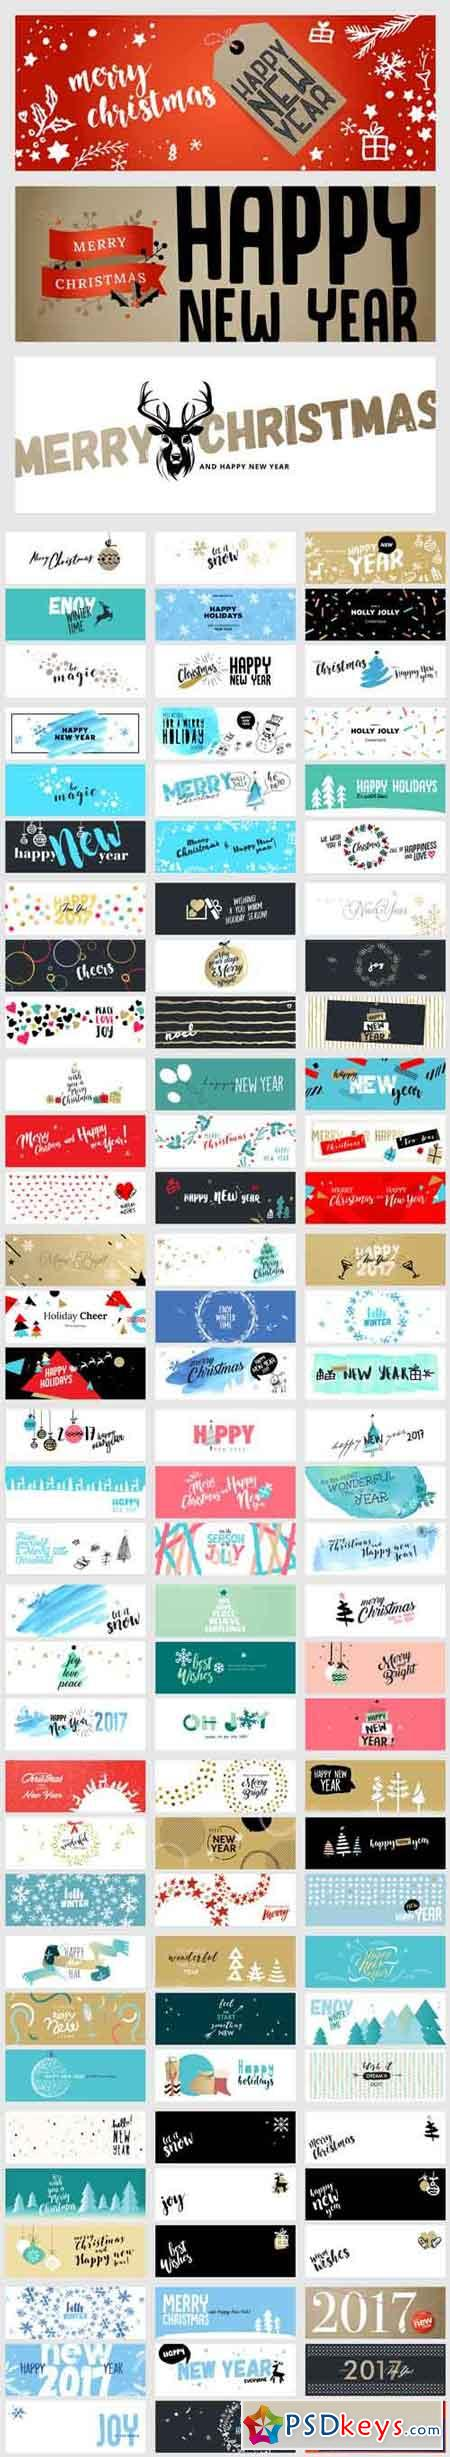 Christmas and New Year Social Media Banners